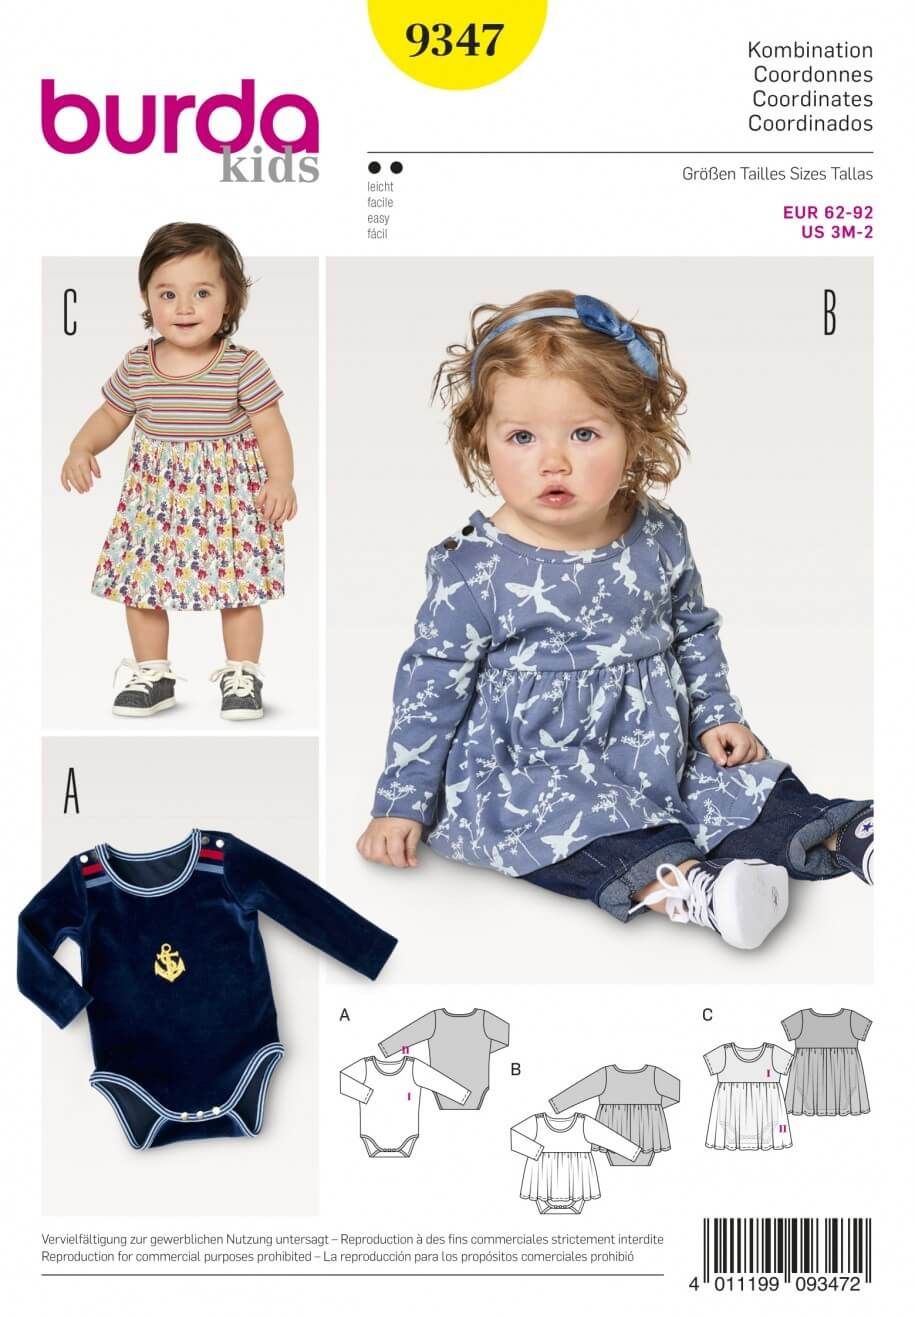 Burda Kids Baby Bodysuit With Optional Pleated Skirt Sewing Pattern 9347